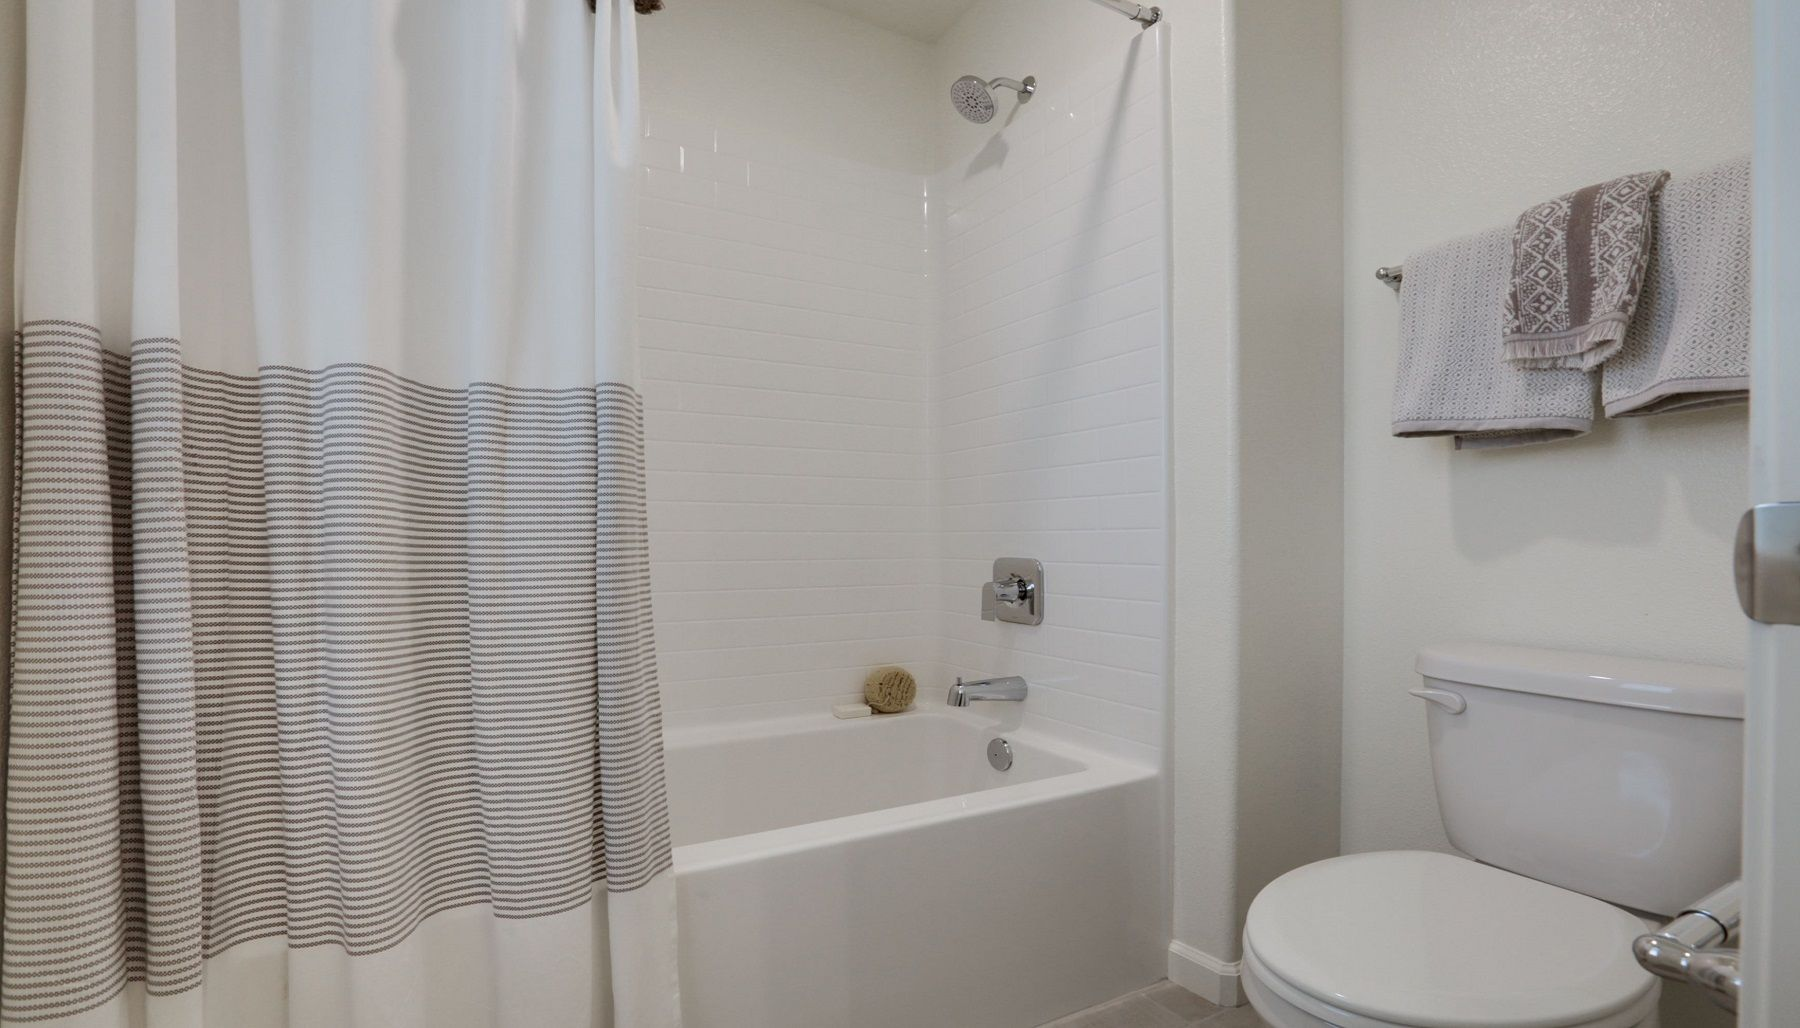 Bathroom featured in the Monroe By D.R. Horton in Bakersfield, CA